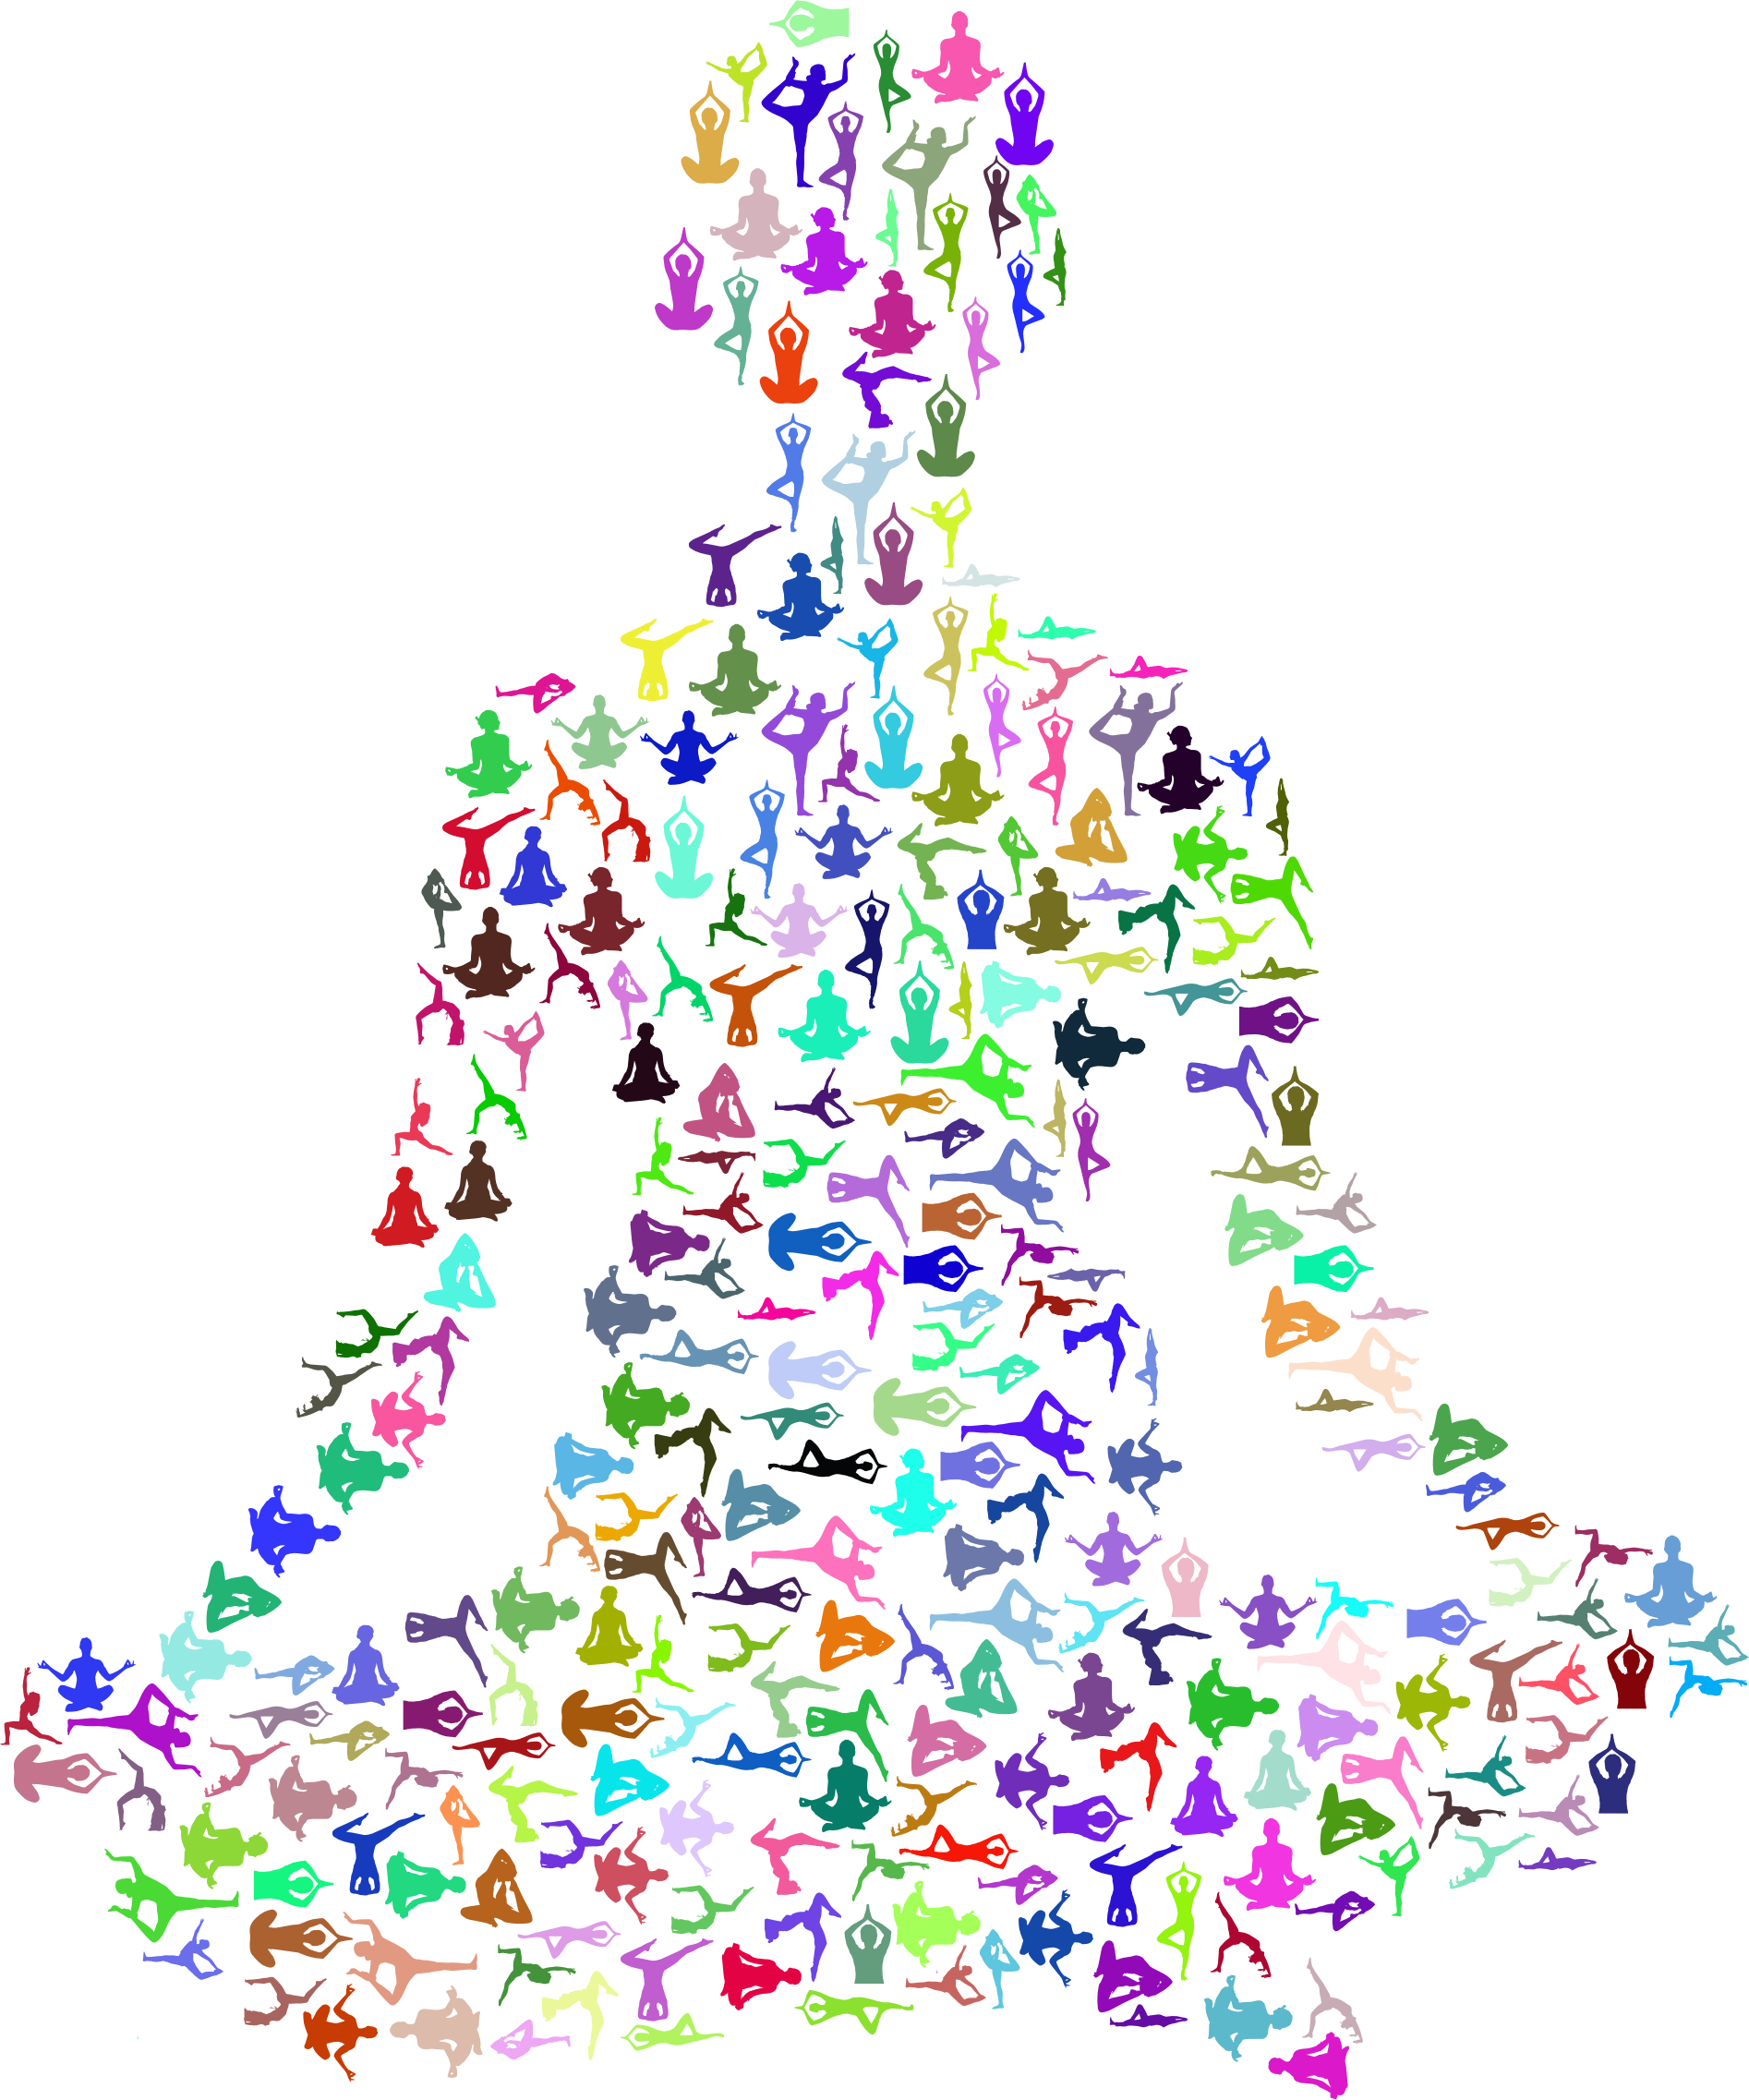 Yoga tree pose clipart png freeuse Clipart - Prismatic Female Yoga Pose Silhouette Fractal No Background png freeuse